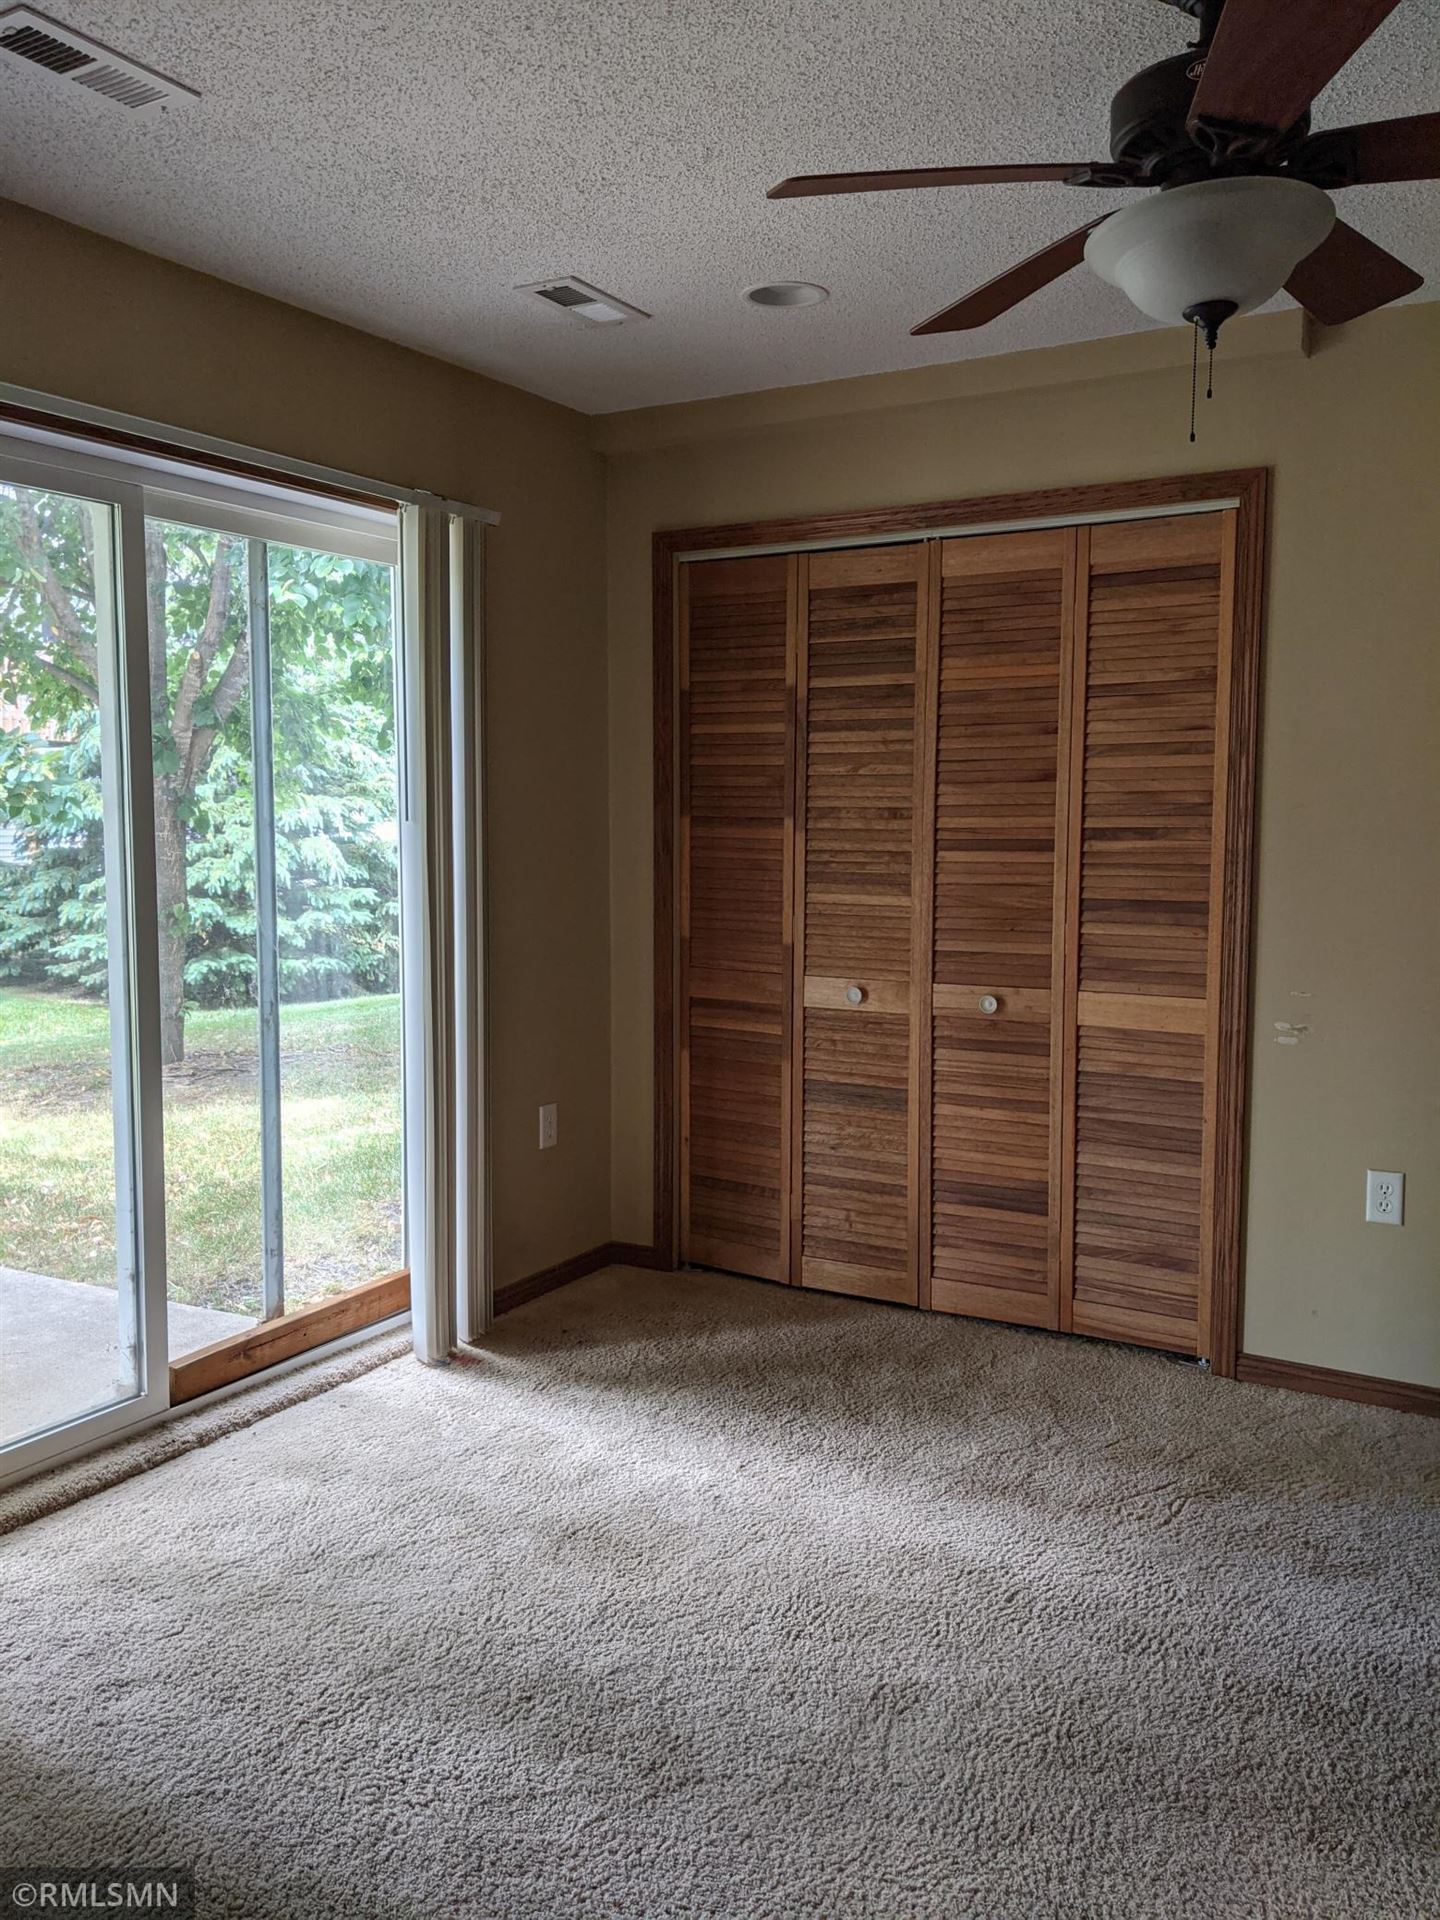 Photo of 6357 207th Street N, Forest Lake, MN 55025 (MLS # 6017254)